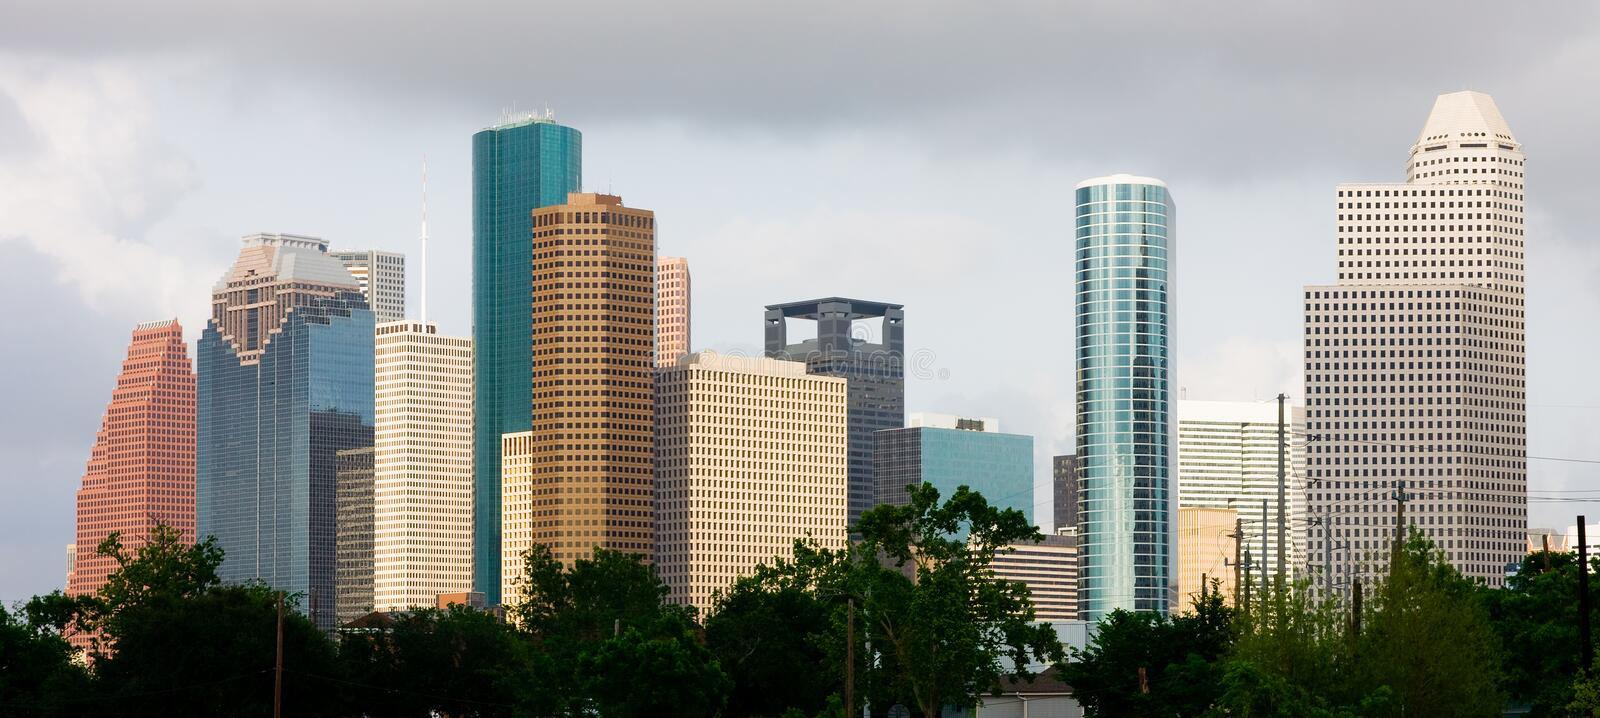 houston Texas fotografia royalty free